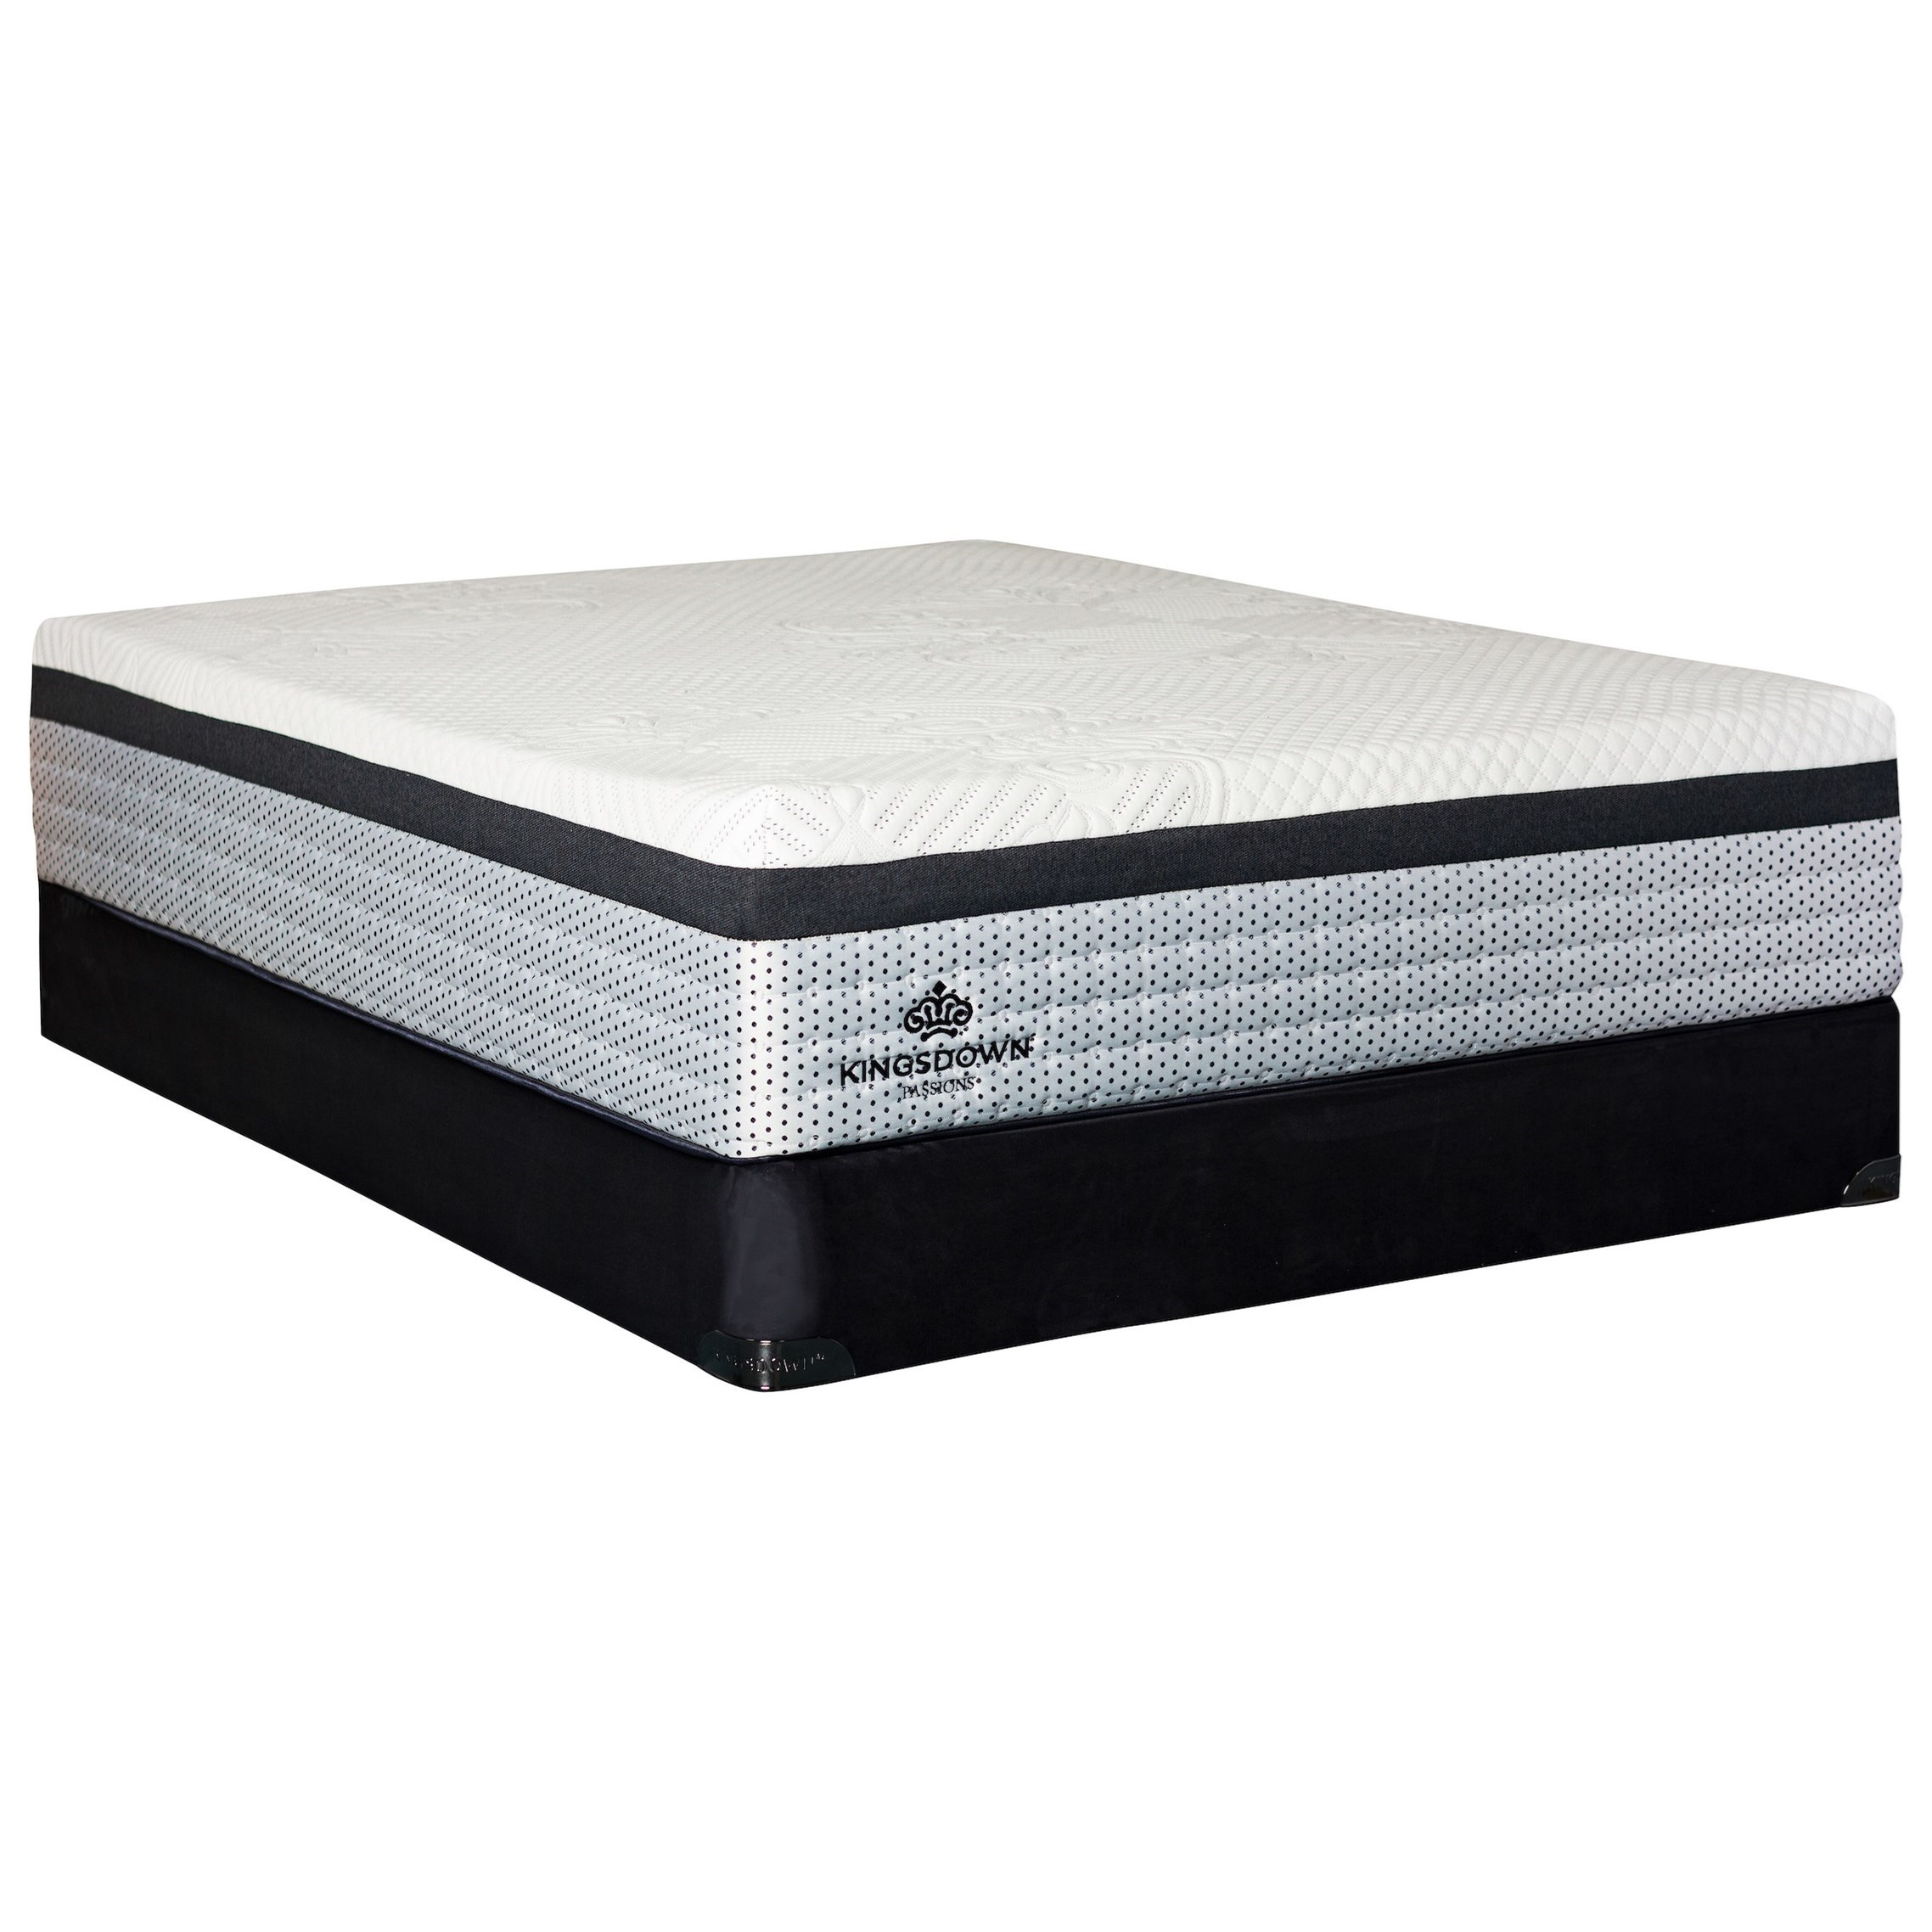 "Queen 14"" Hybrid Euro Top Mattress Set"